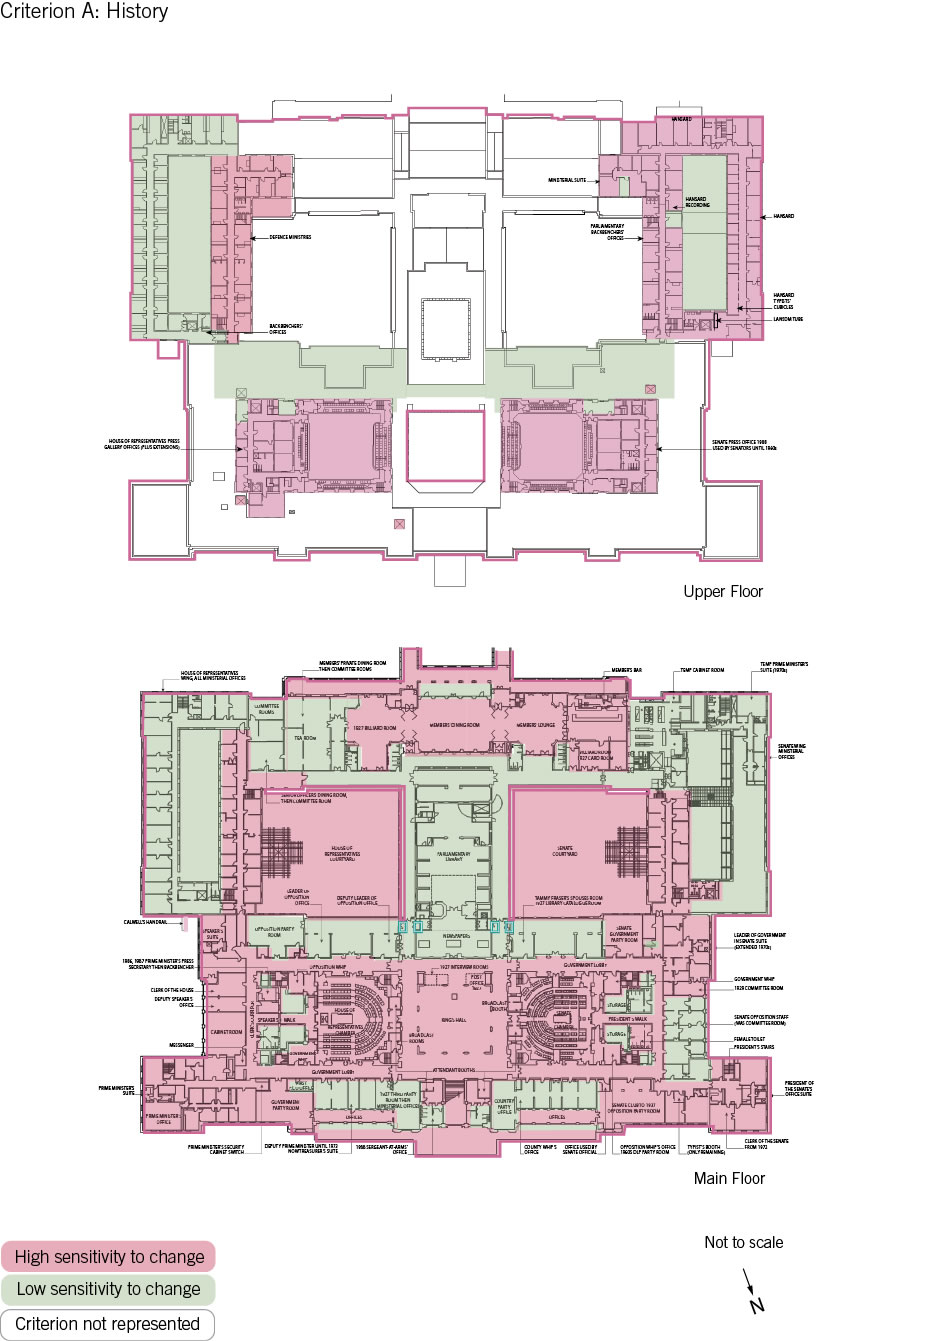 Old Parliament House upper and main floor plan showing the zones and their level of sensitivity to change.